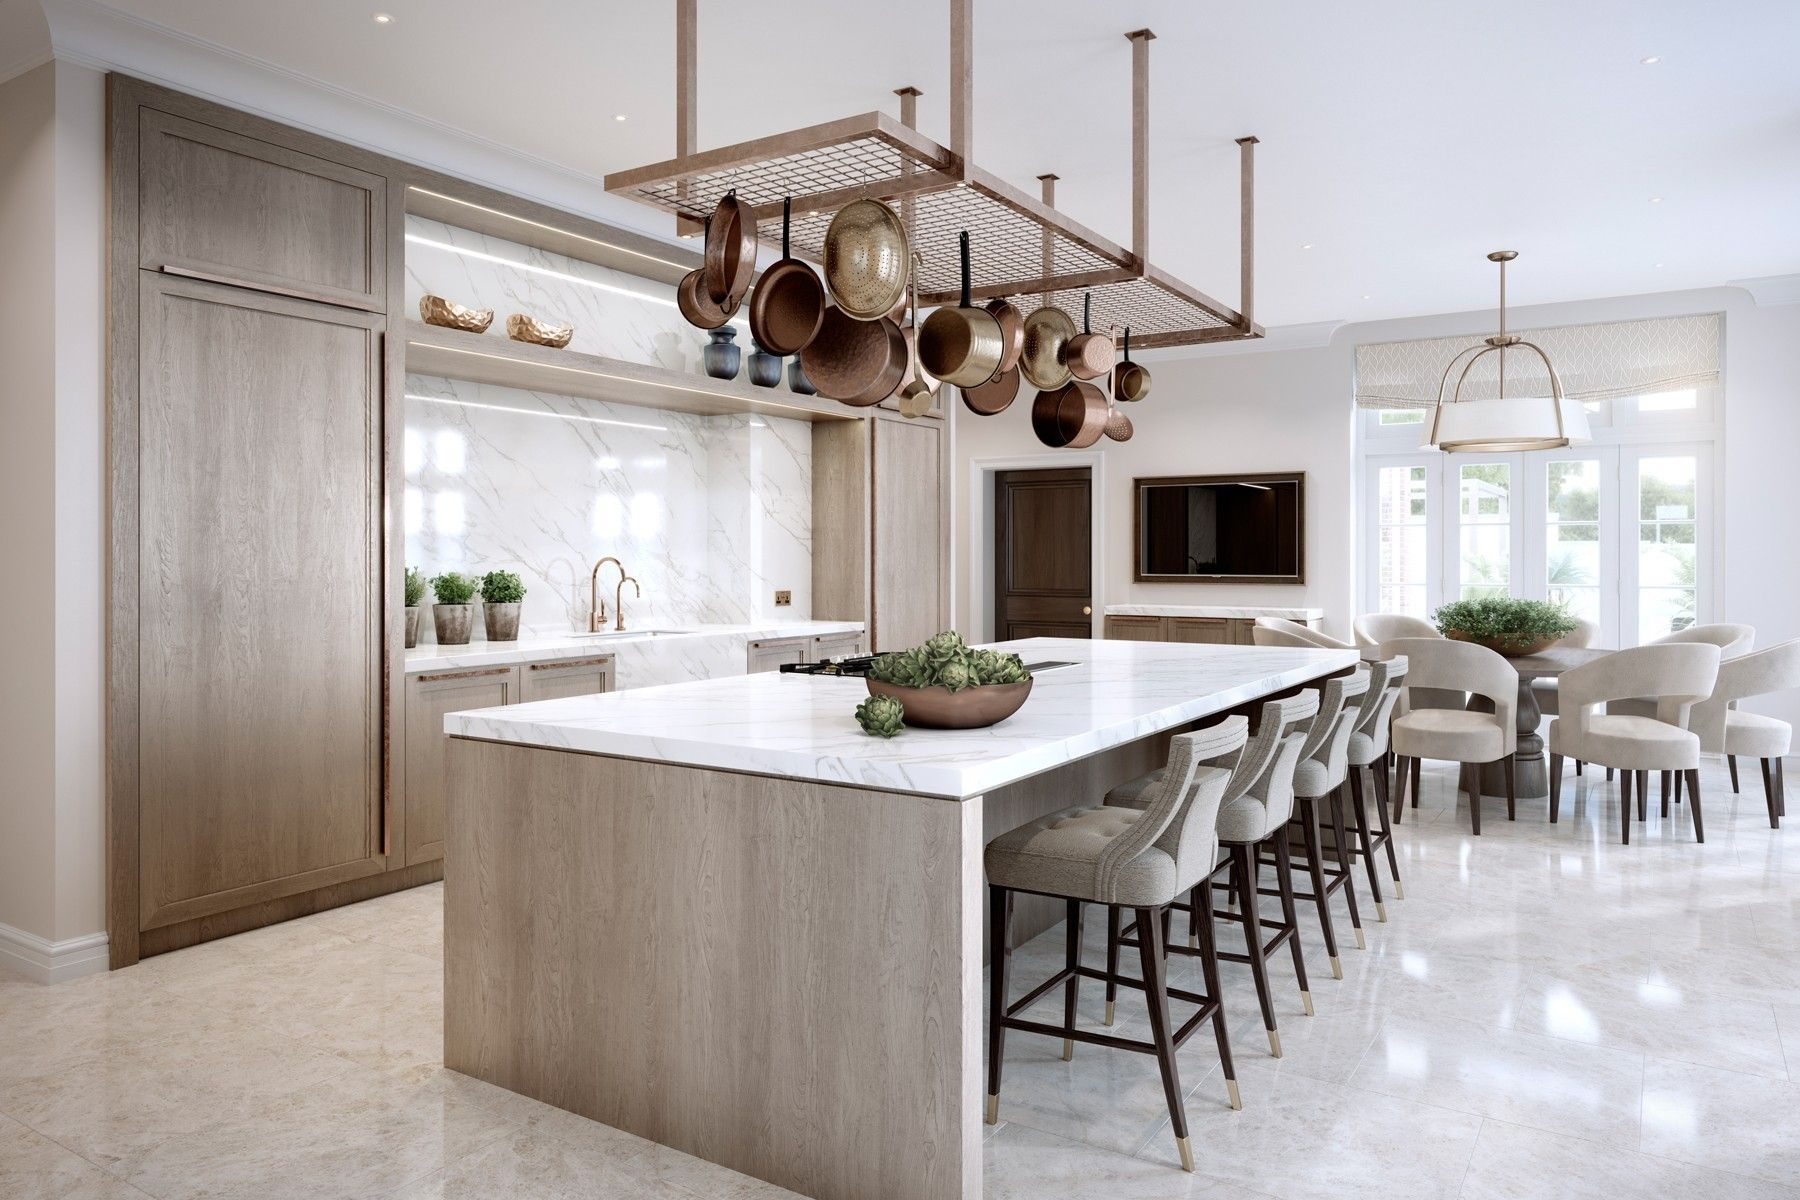 Kitchen Seating Ideas Surrey Family Home  Luxury Interior Design Laura Hammett